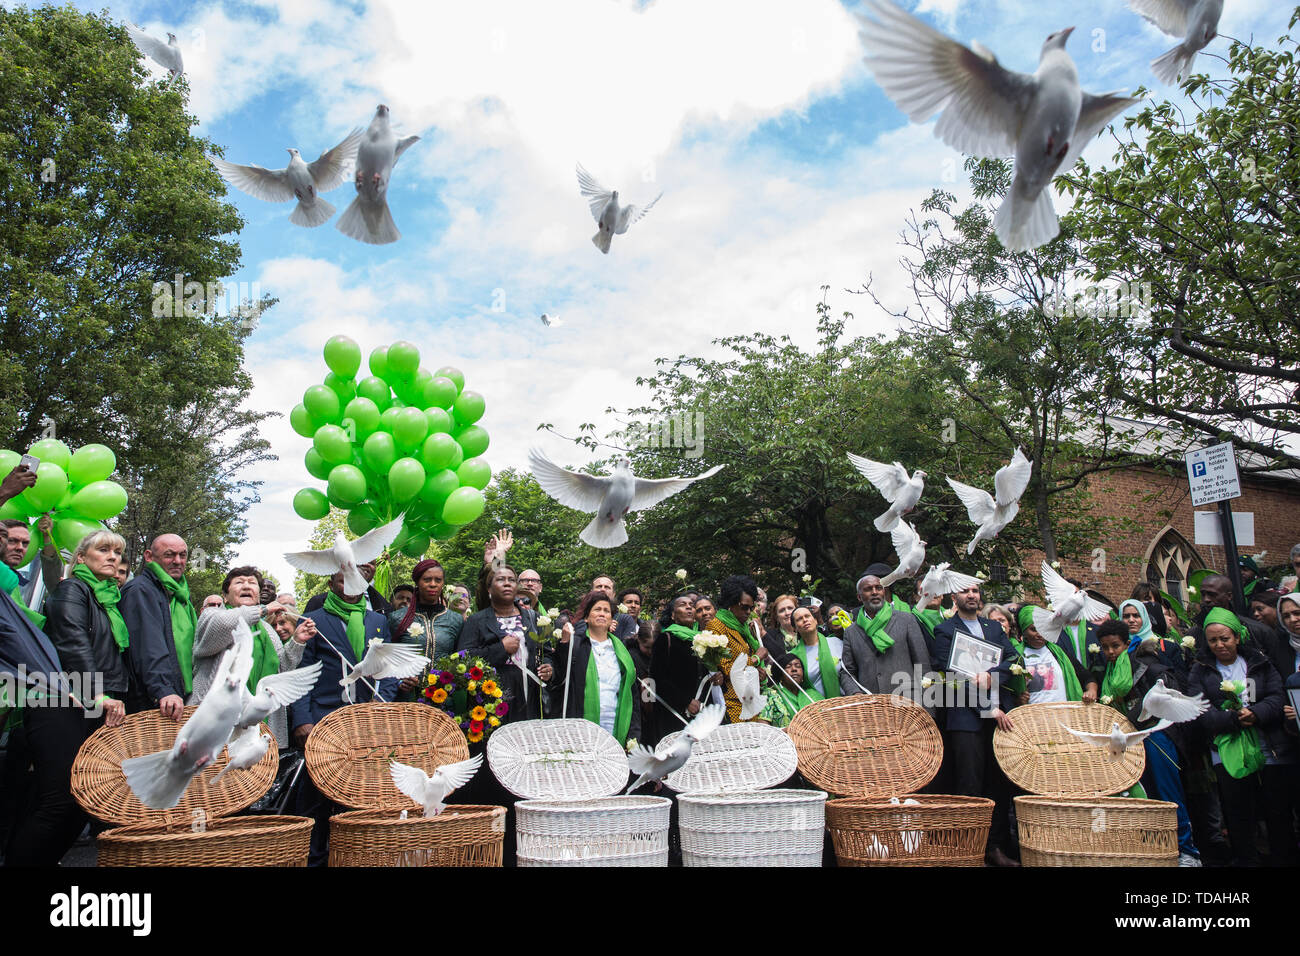 London, UK. 14 June, 2019. Family members release doves of peace following a memorial service at St Helen's Church to mark the second anniversary of the Grenfell Tower fire on 14th June 2017 in which at least 72 people died and over 70 were injured. Credit: Mark Kerrison/Alamy Live News - Stock Image